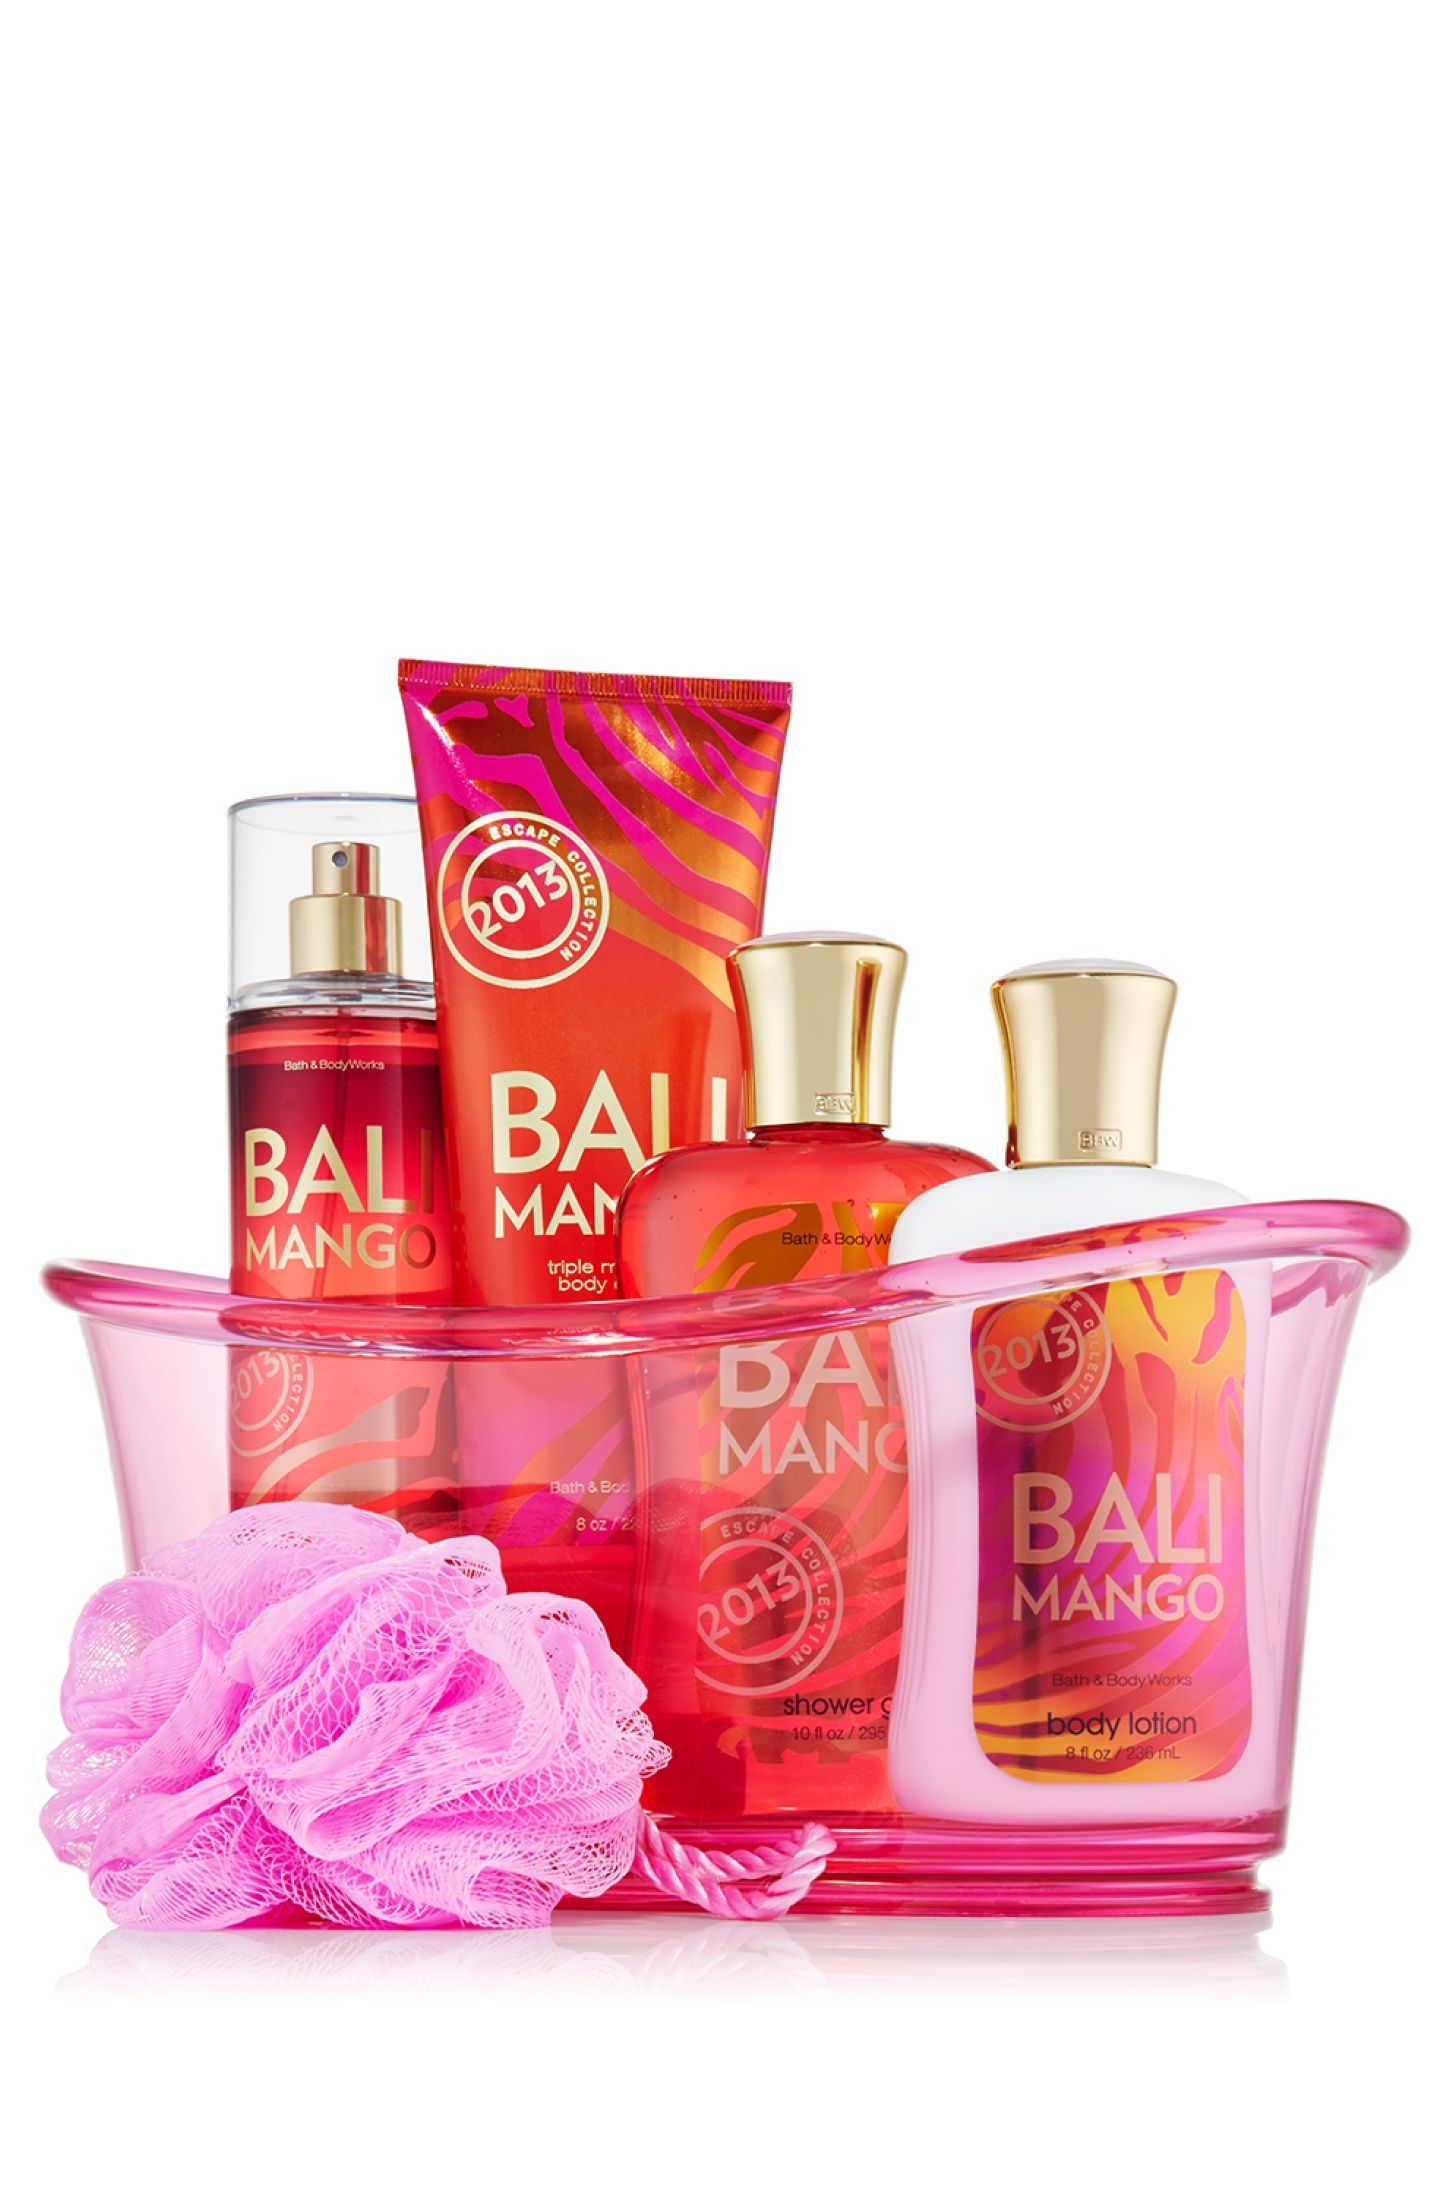 Bali Mango Bath Body Works Love This Scent Too In 2019